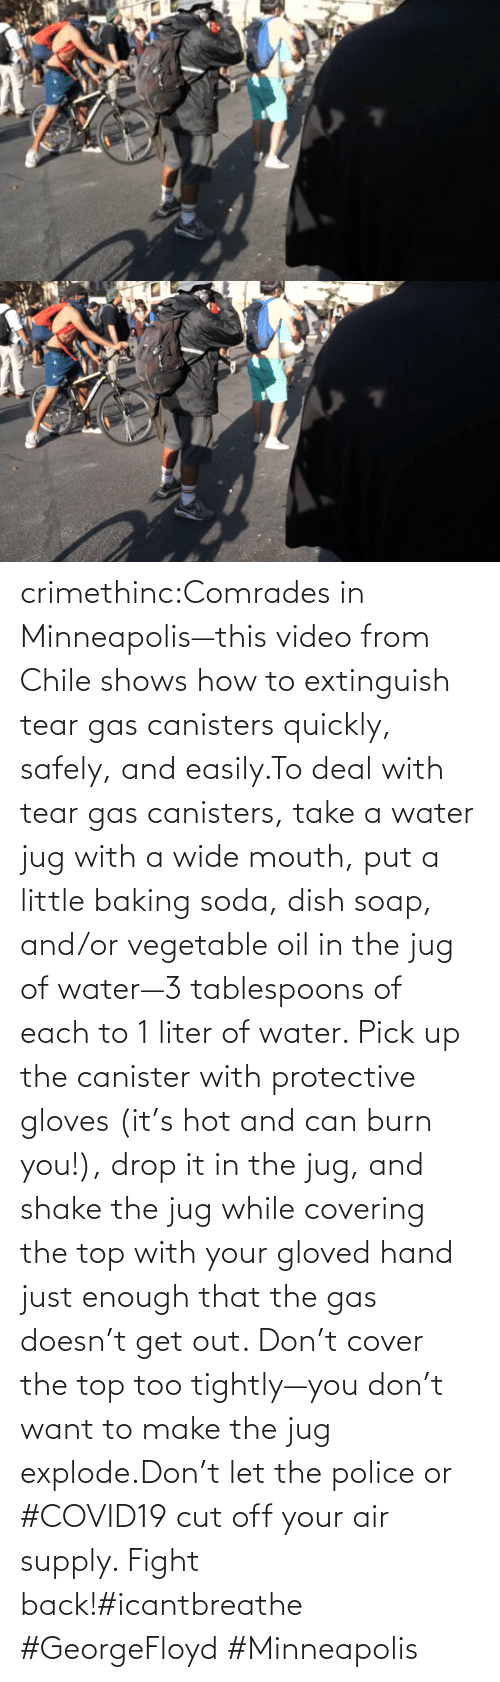 Cut: crimethinc:Comrades in Minneapolis—this video from Chile shows how to extinguish tear gas canisters quickly, safely, and easily.To deal with tear gas canisters, take a water jug with a wide mouth, put a little baking soda, dish soap, and/or vegetable oil in the jug of water—3 tablespoons of each to 1 liter of water. Pick up the canister with protective gloves (it's hot and can burn you!), drop it in the jug, and shake the jug while covering the top with your gloved hand just enough that the gas doesn't get out. Don't cover the top too tightly—you don't want to make the jug explode.Don't let the police or #COVID19 cut off your air supply. Fight back!#icantbreathe #GeorgeFloyd #Minneapolis